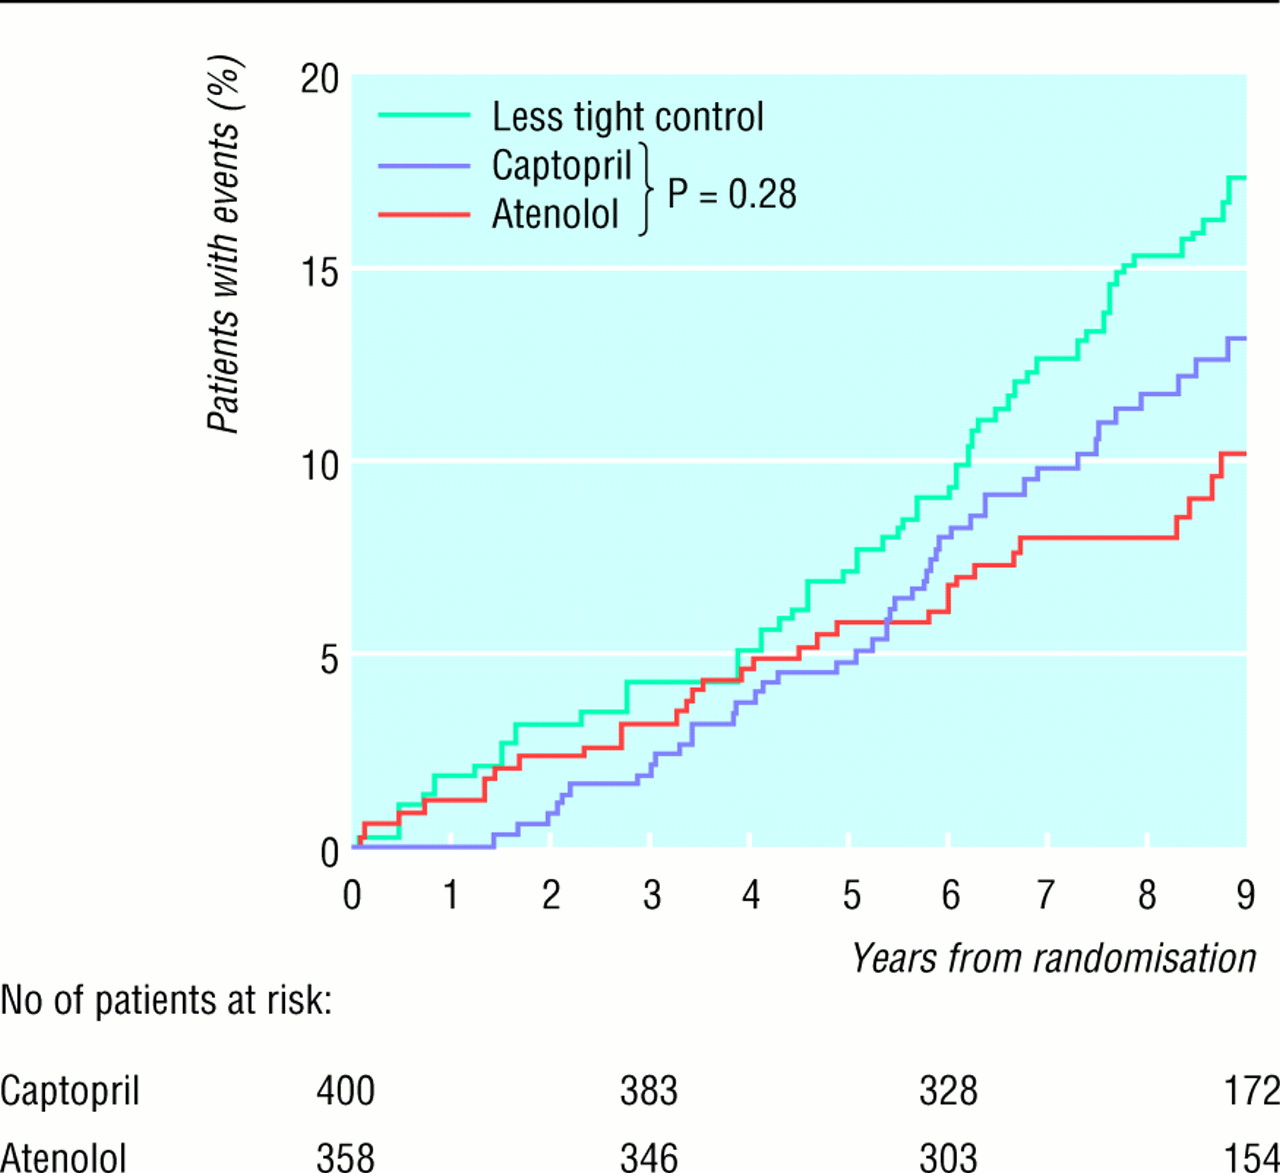 efficacy of atenolol and captopril in reducing risk of macrovascular